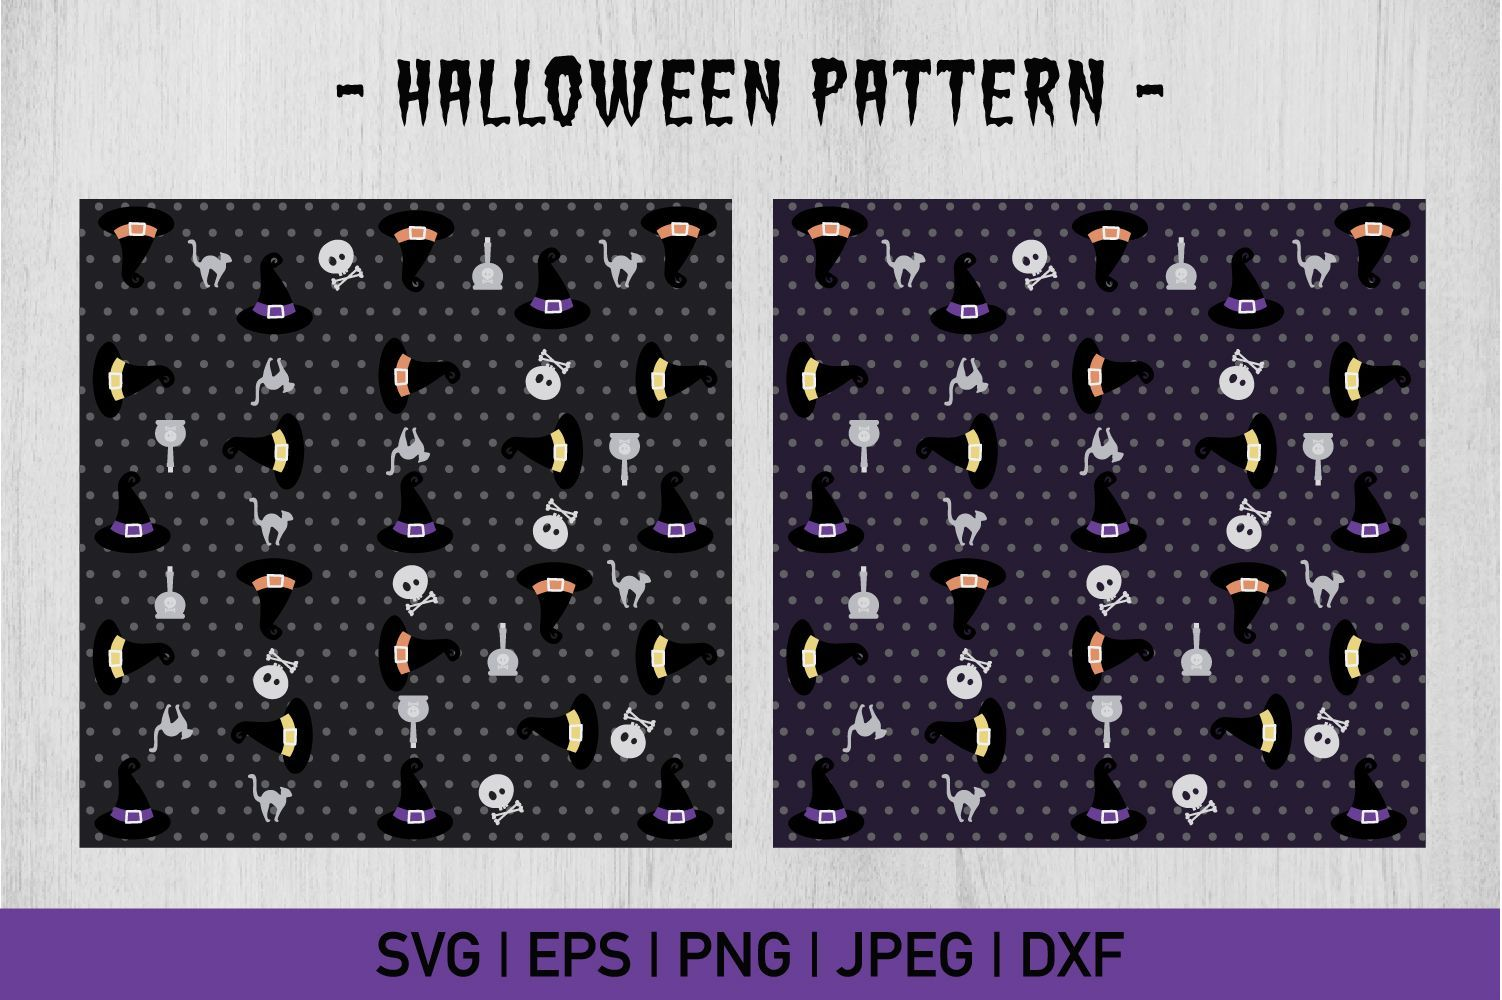 Halloween Pattern, Halloween Texture #programingsoftware Can be used with the Silhouette cutting machines, Cricut, or other program/software that accept these files. - After purchasing you... #programingsoftware